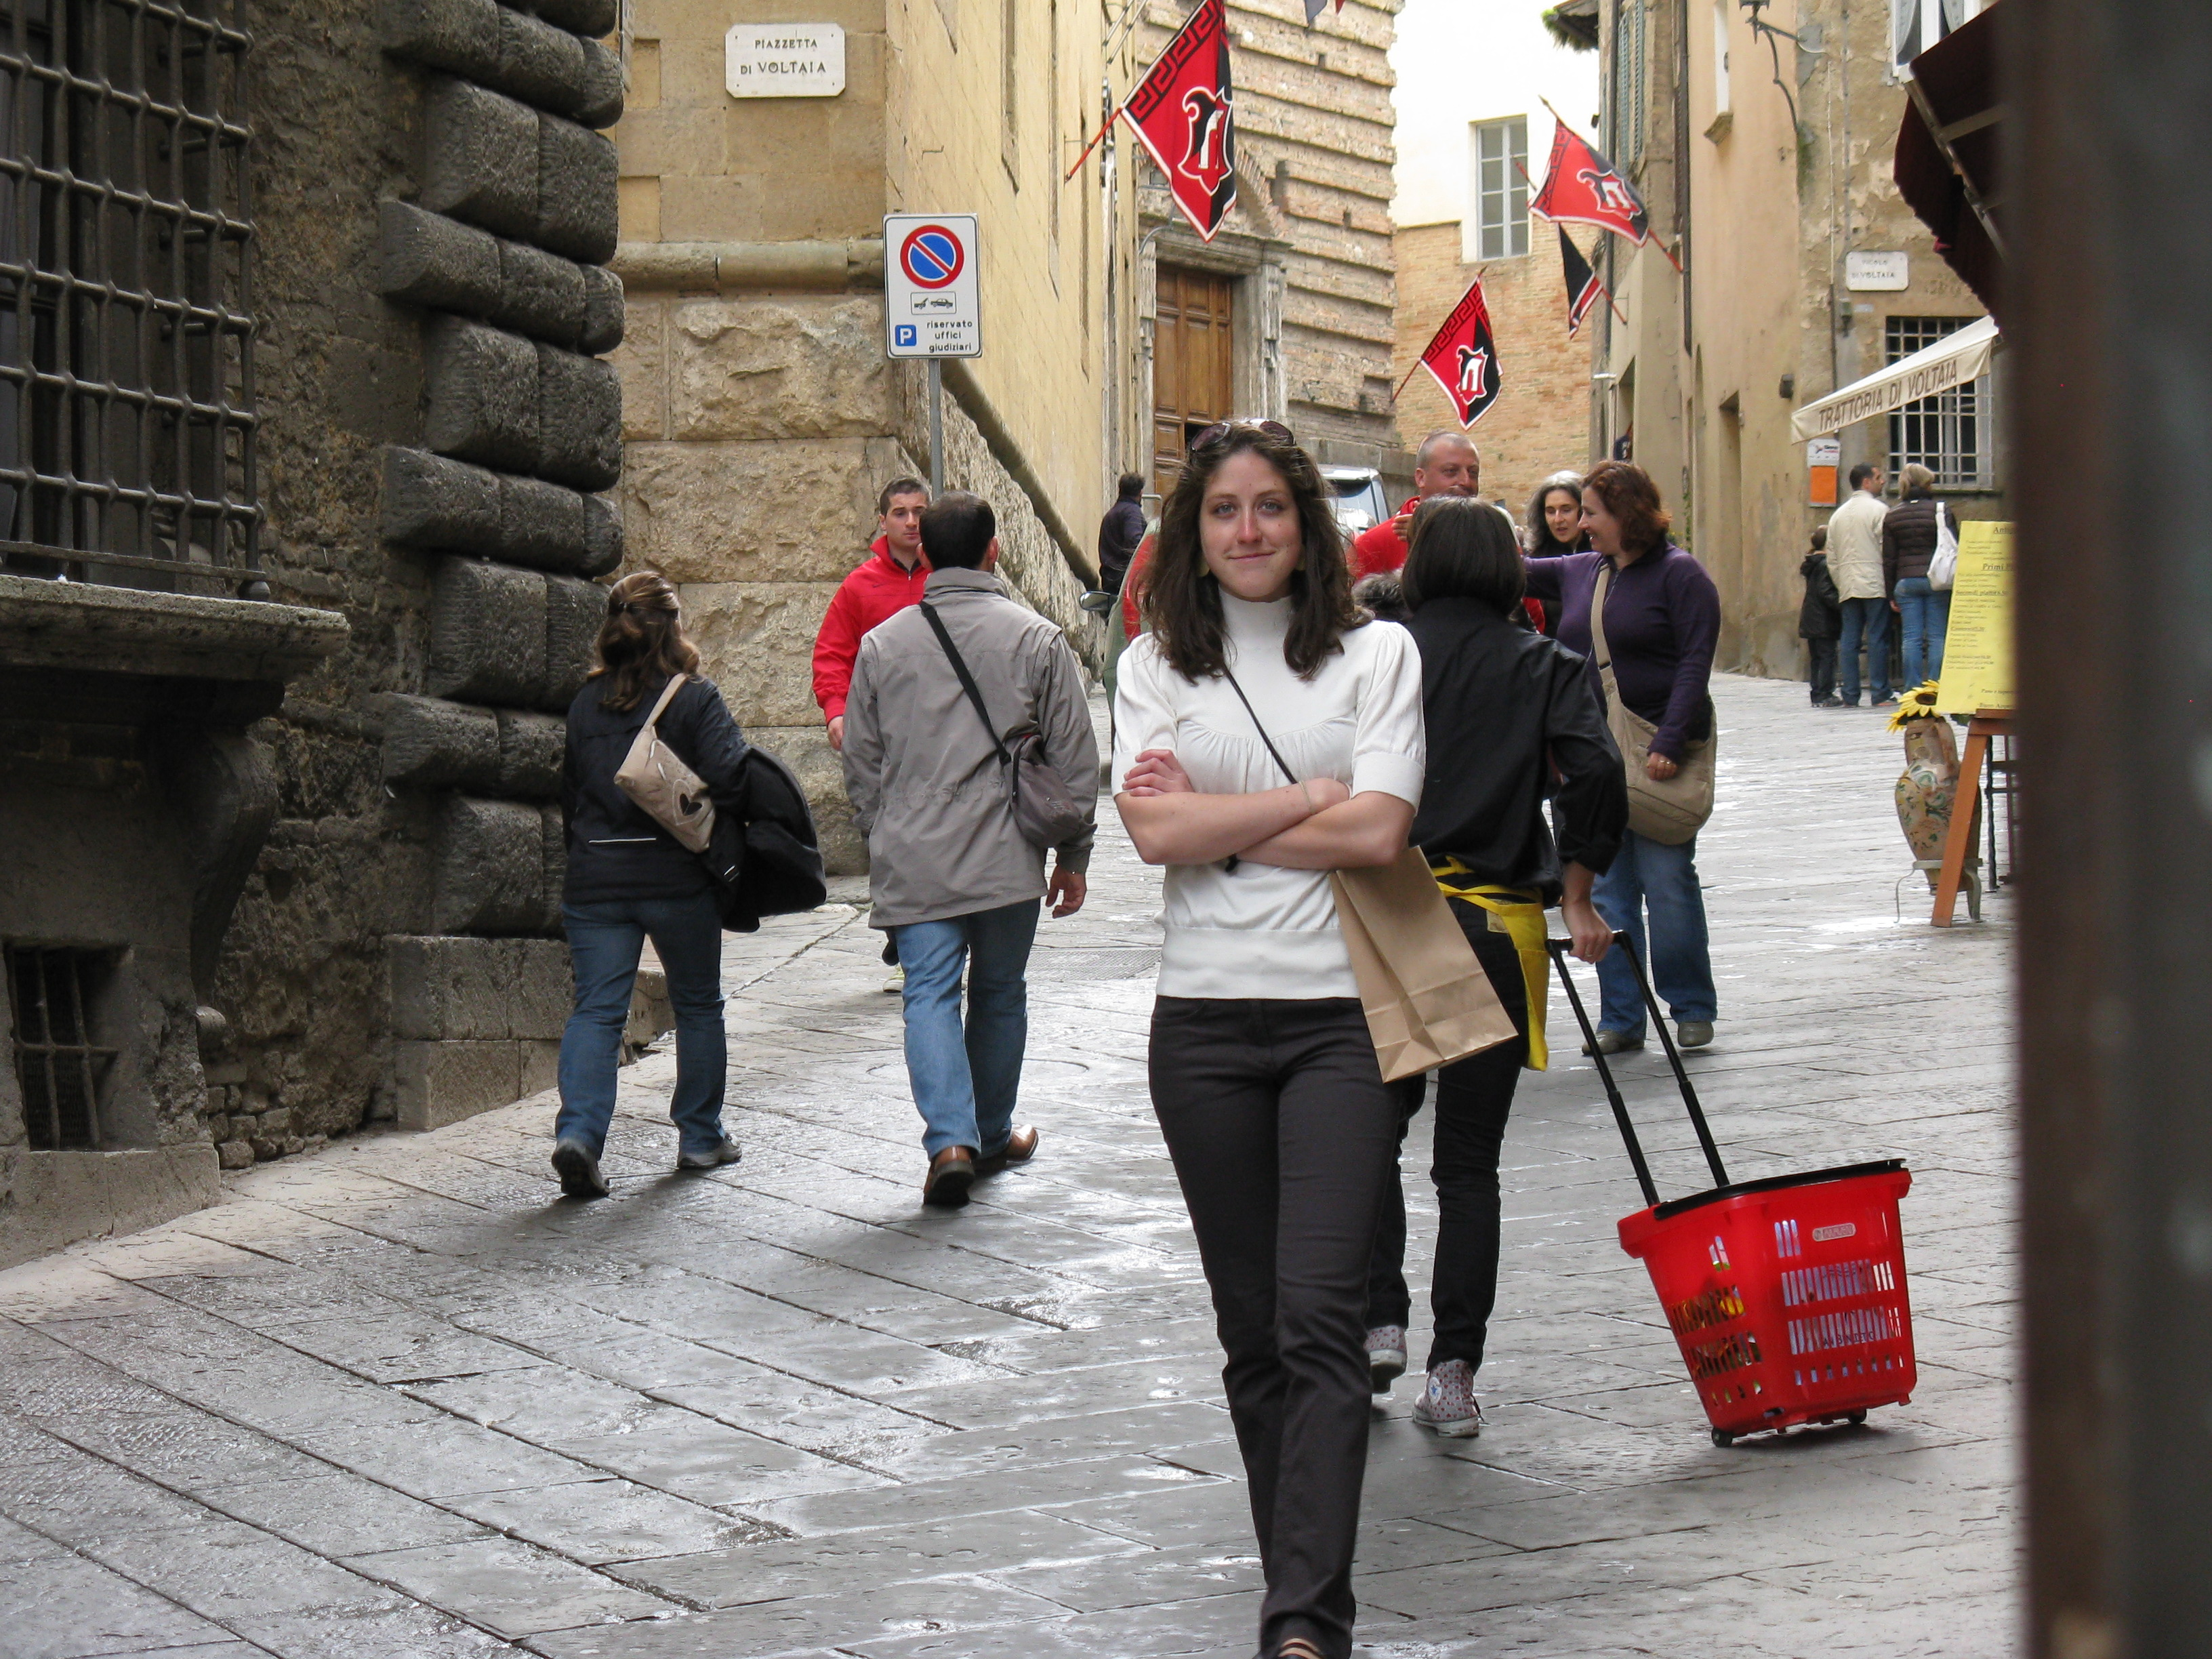 On the street in Montepulciano